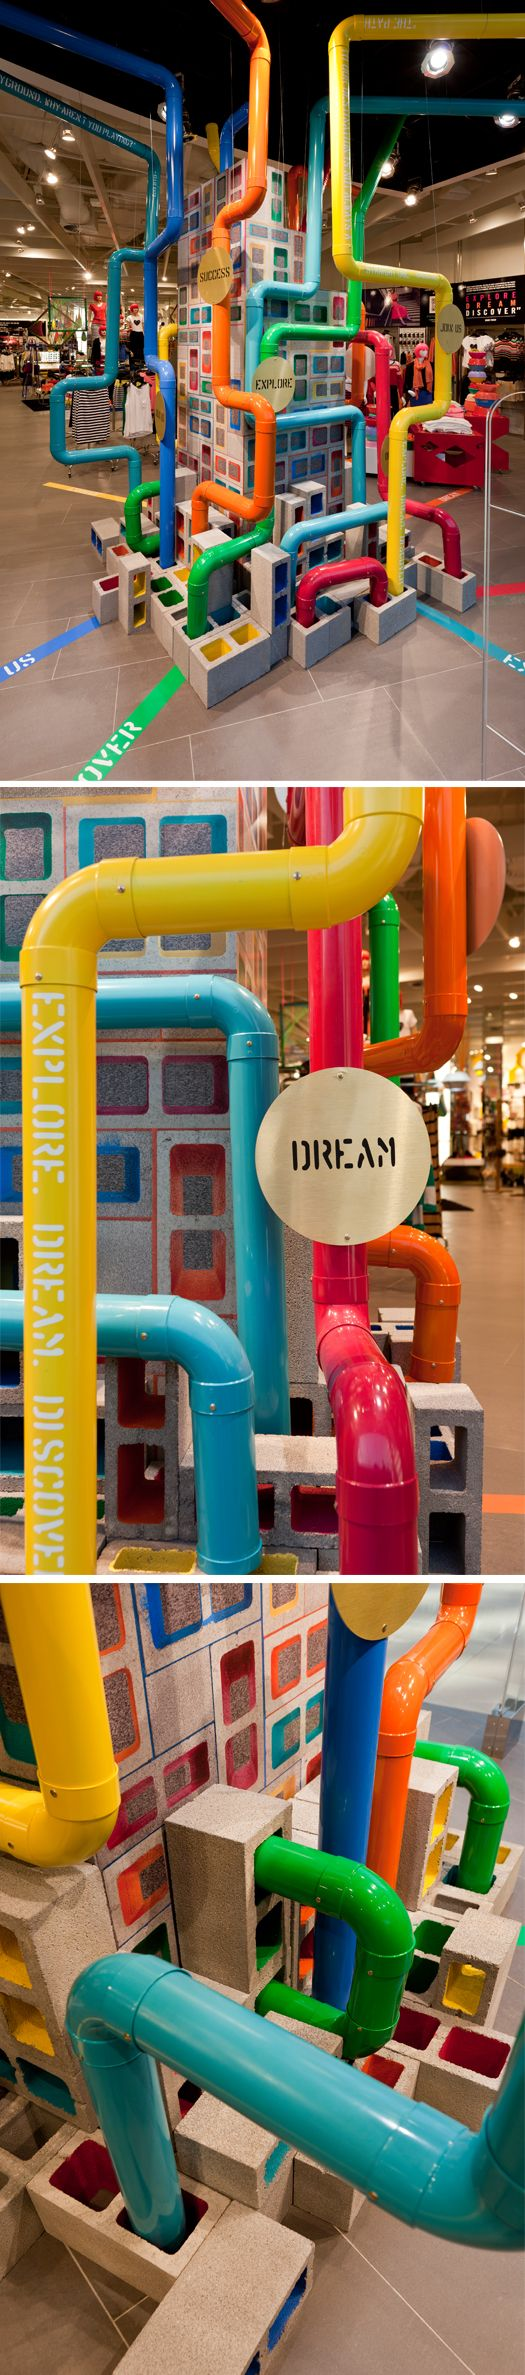 the idea of maps that all interlink our lives, the fun directions we choose along the way. using besser bricks and pipes to create bright pathways.